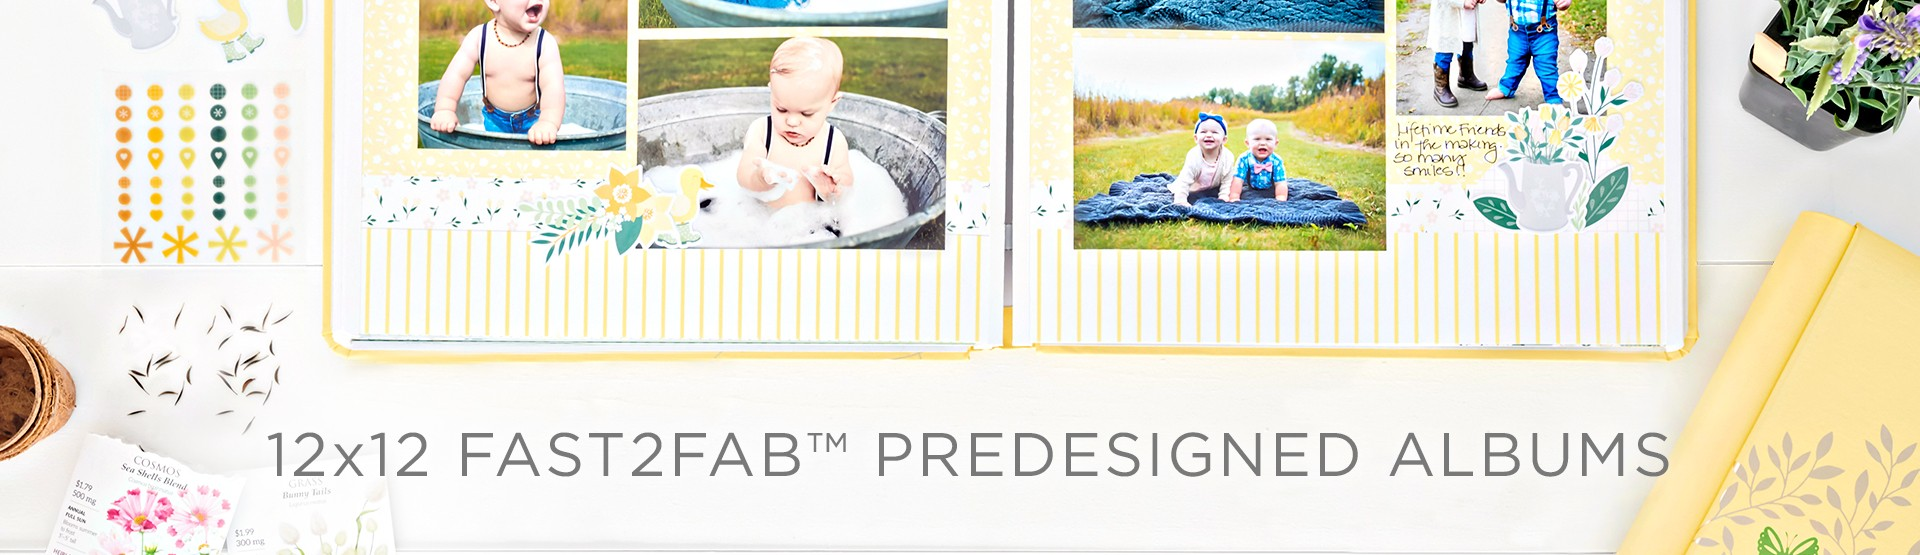 12x12 Fast2Fab Predesigned Albums